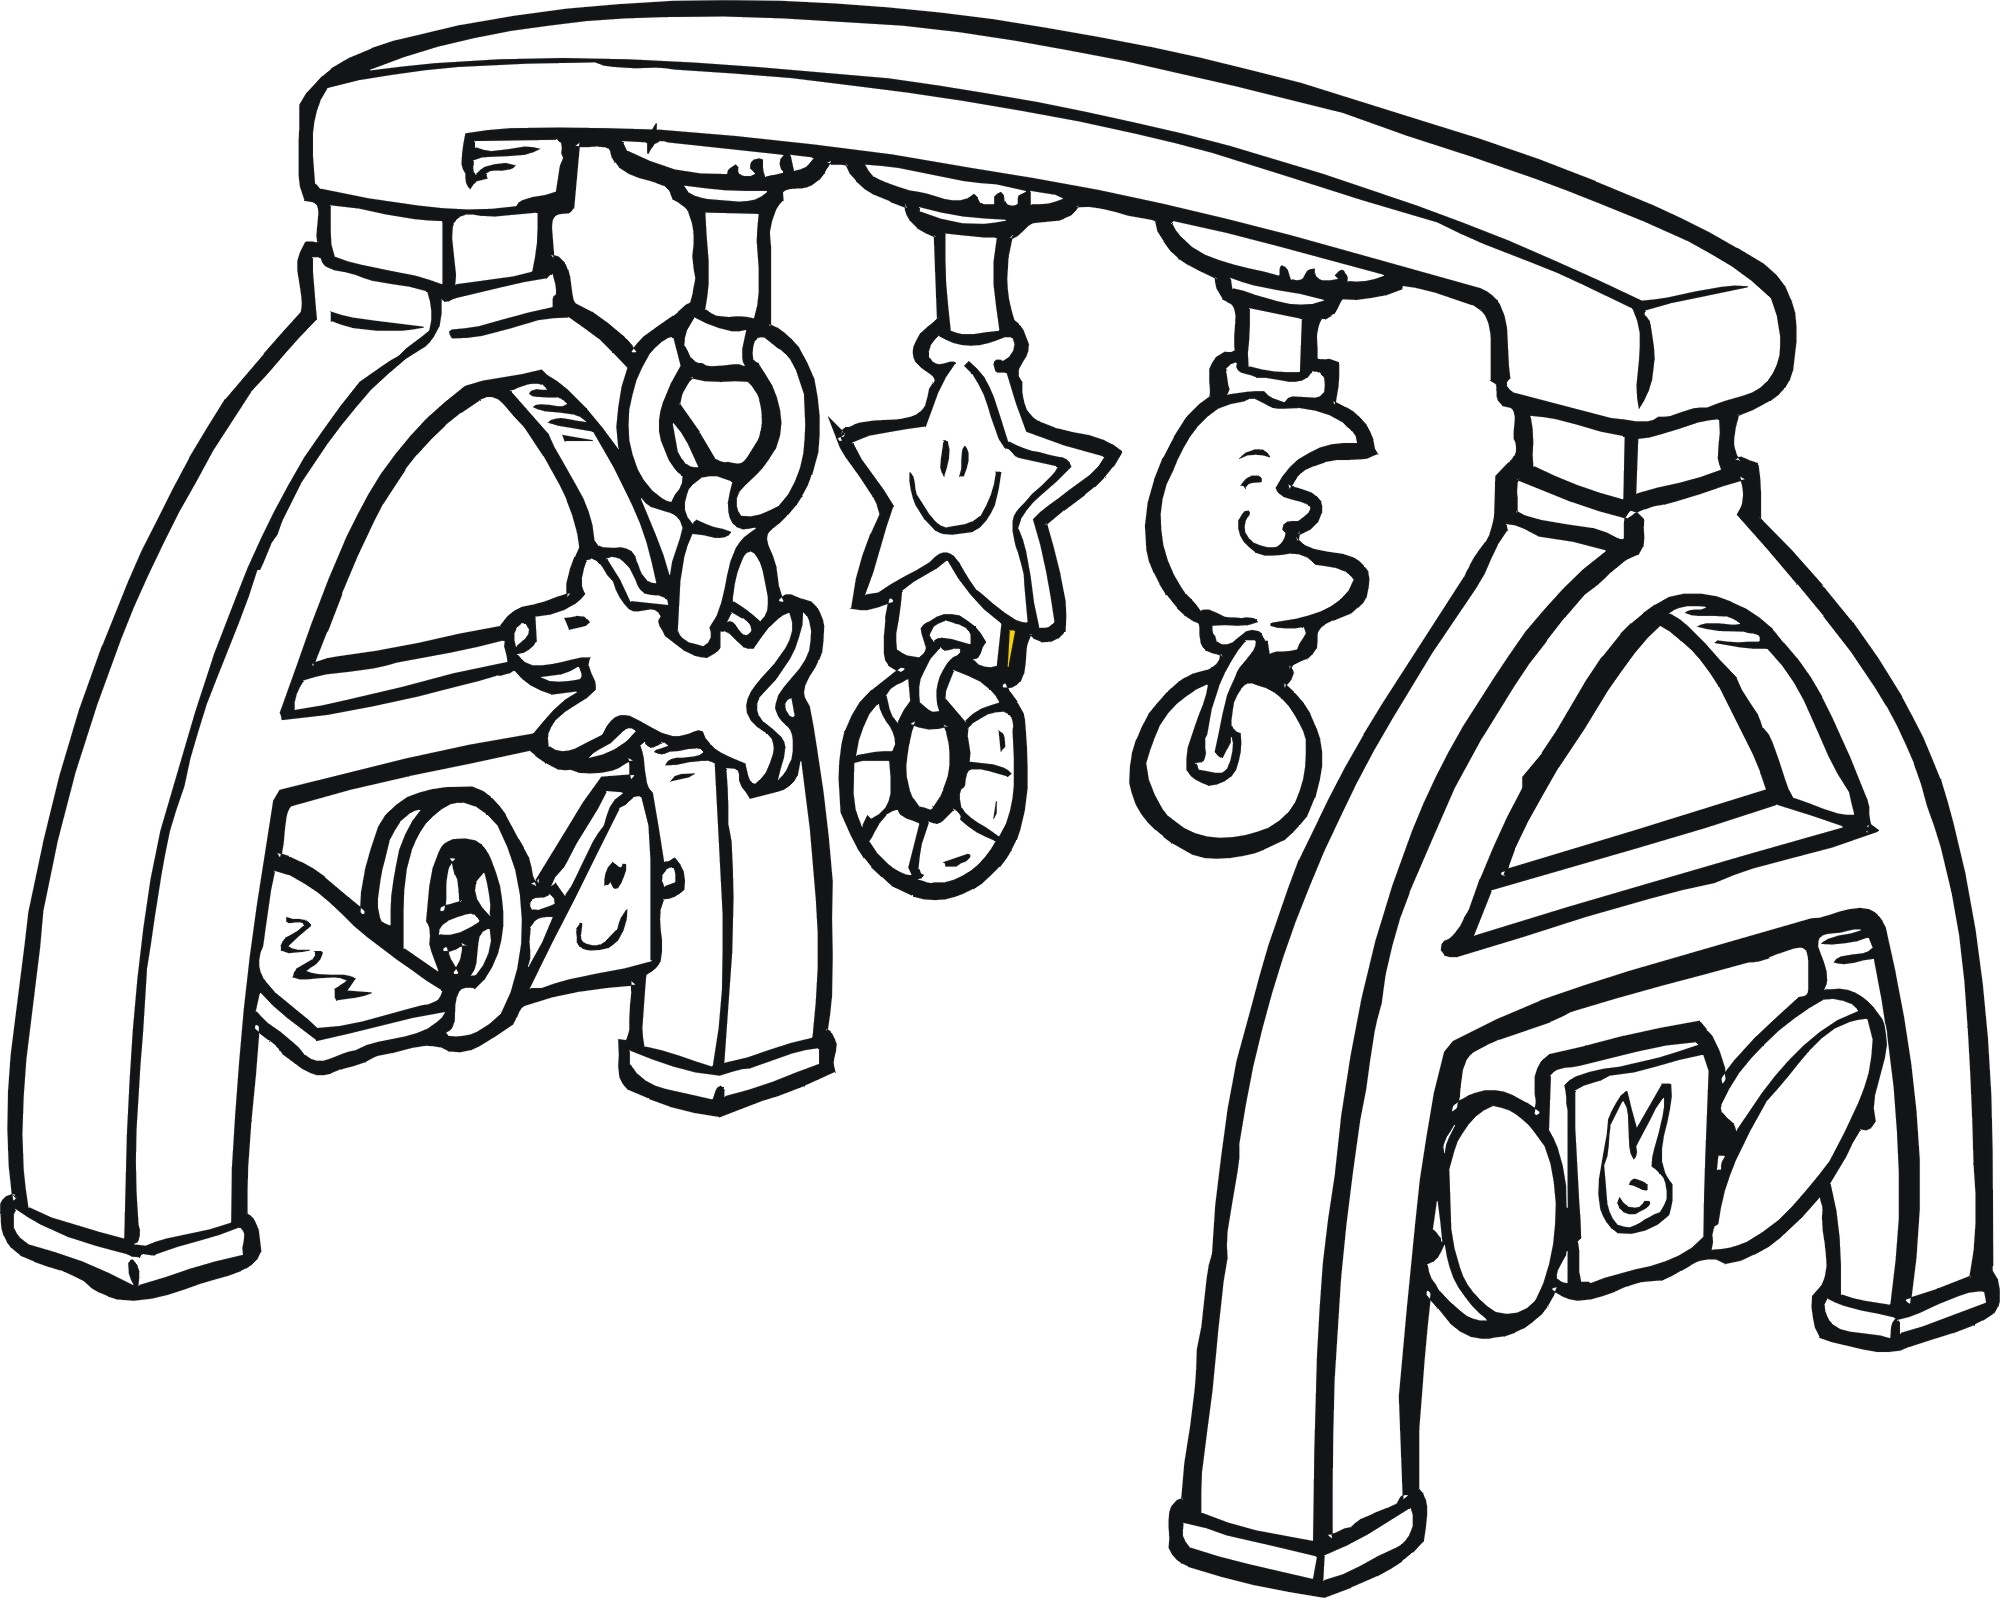 2000x1598 Fresh Baby Rattle Coloring Page Gallery Printable Coloring Sheet